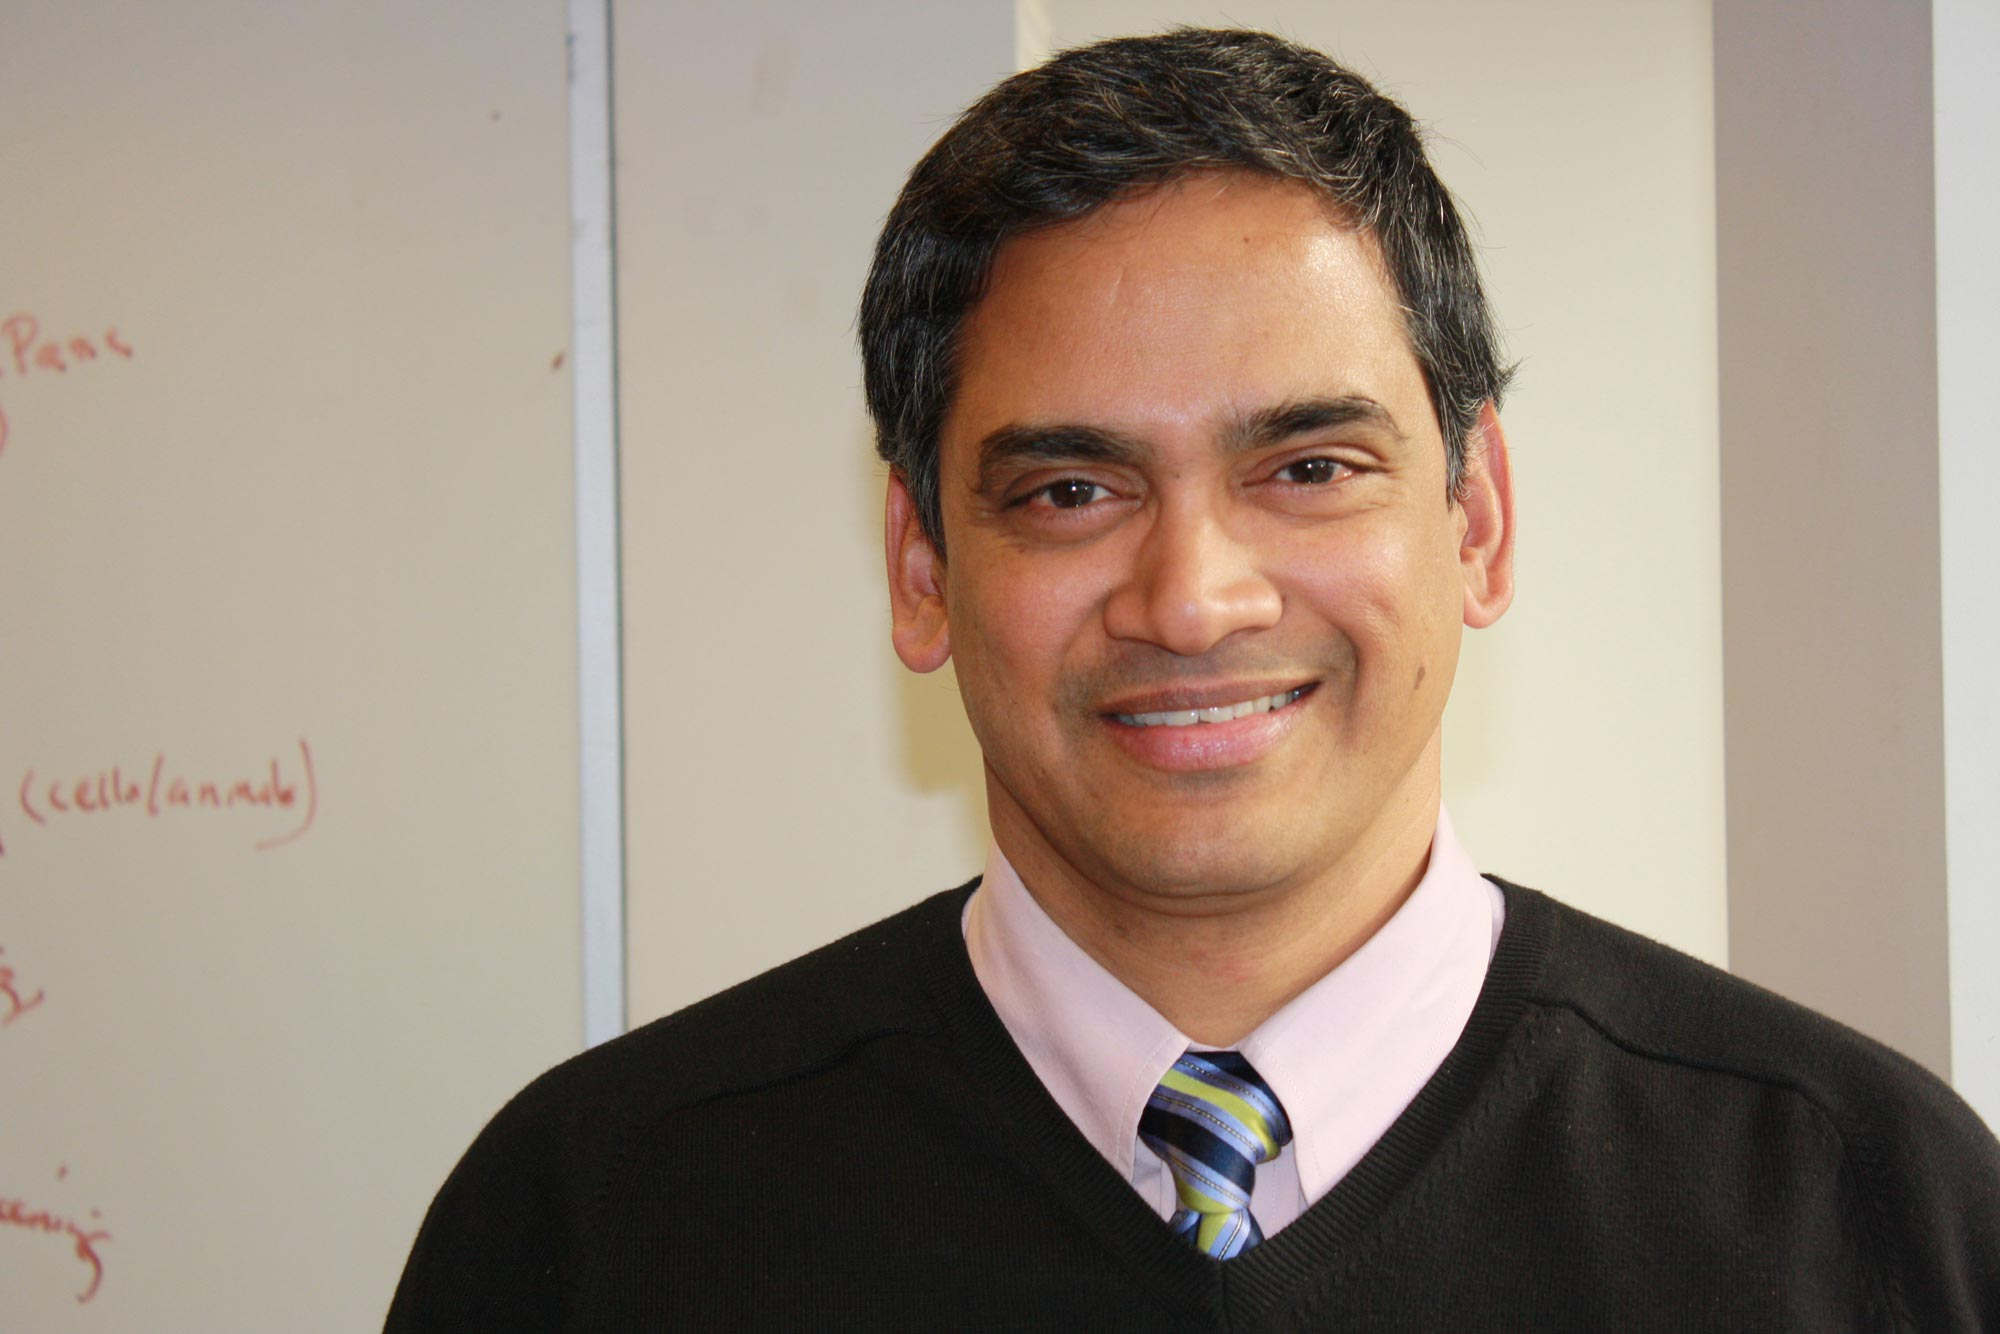 """Kodi S. Ravichandran was honored for his research on """"cell clearance"""" or how the human body turns over cells. (Contributed photo)"""